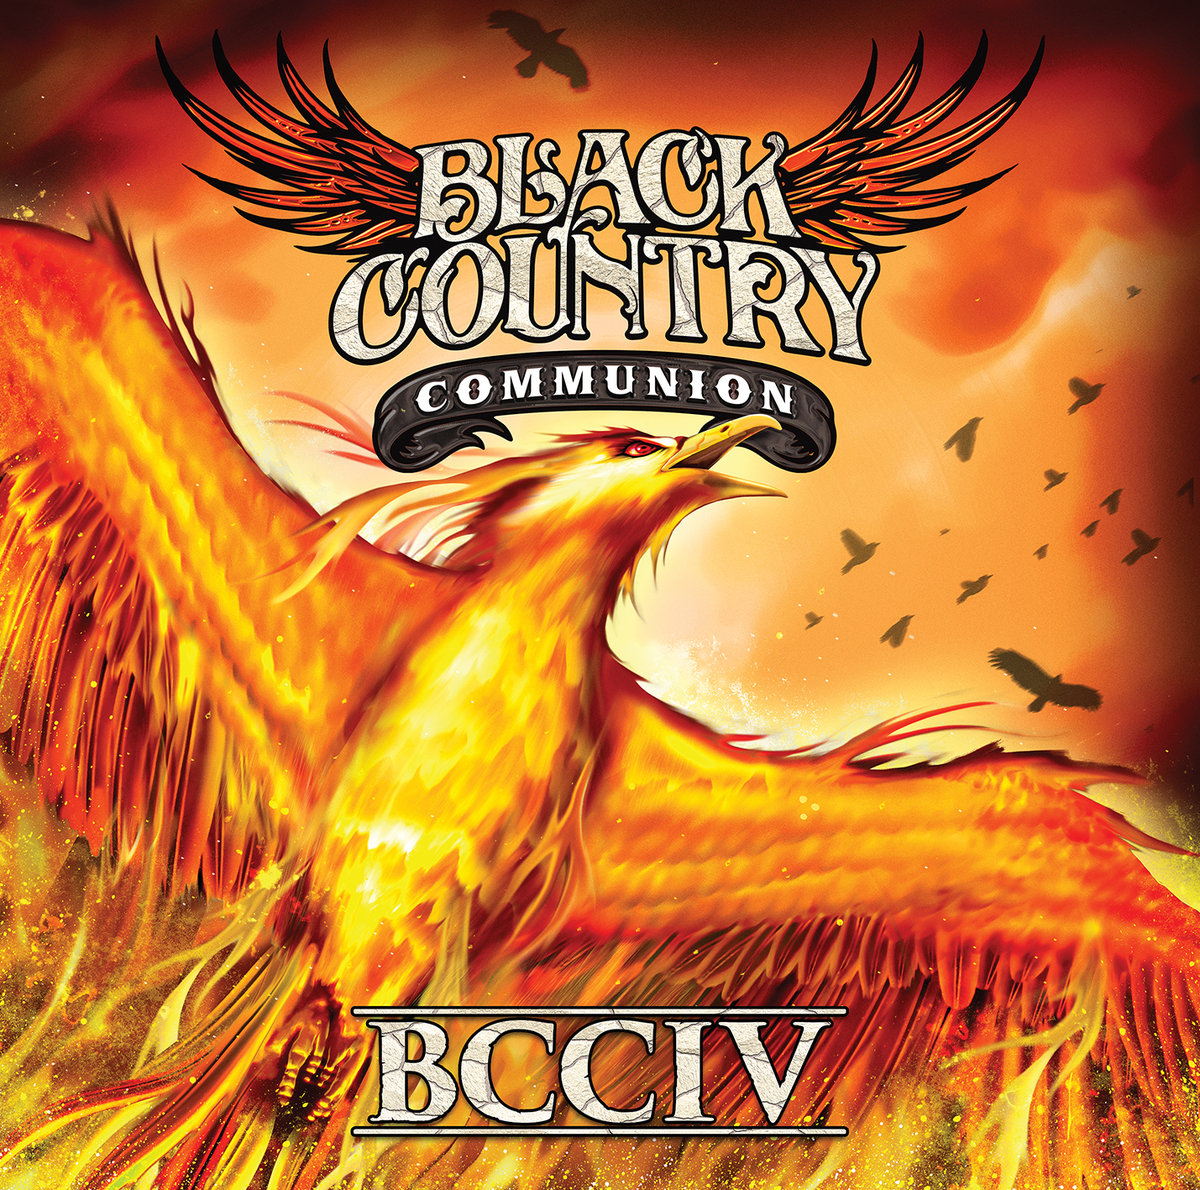 Black Country Communion – BCCIV